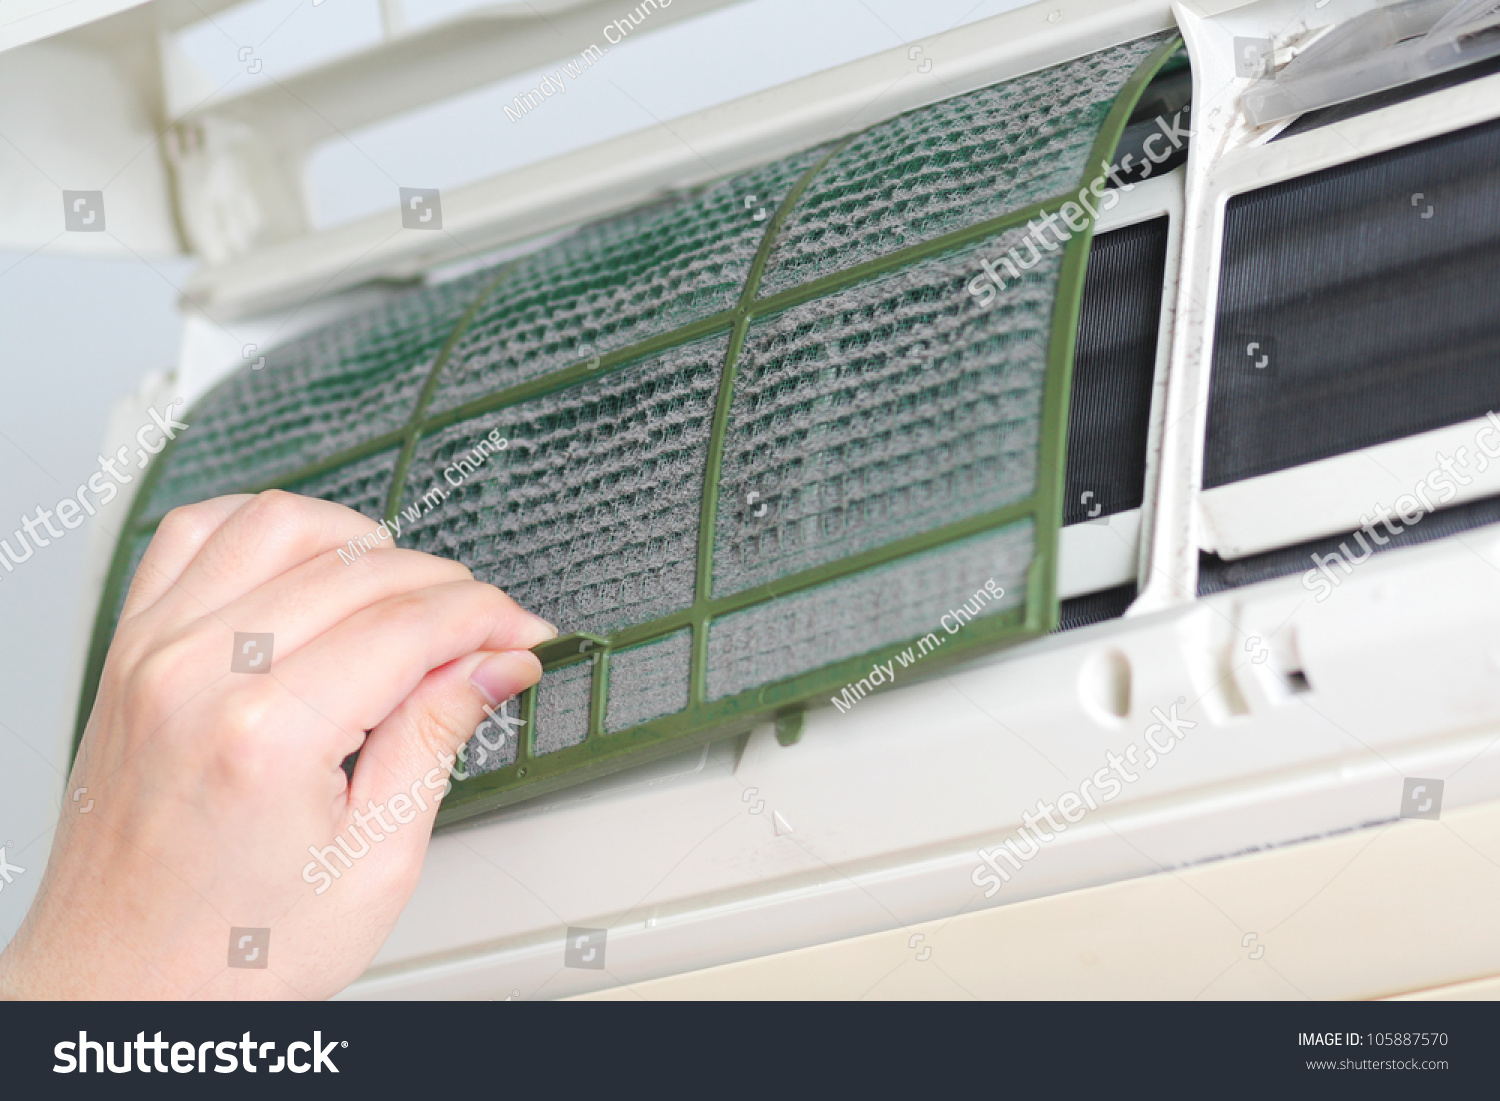 Image Result For Consumer Reports Central Air Conditioners